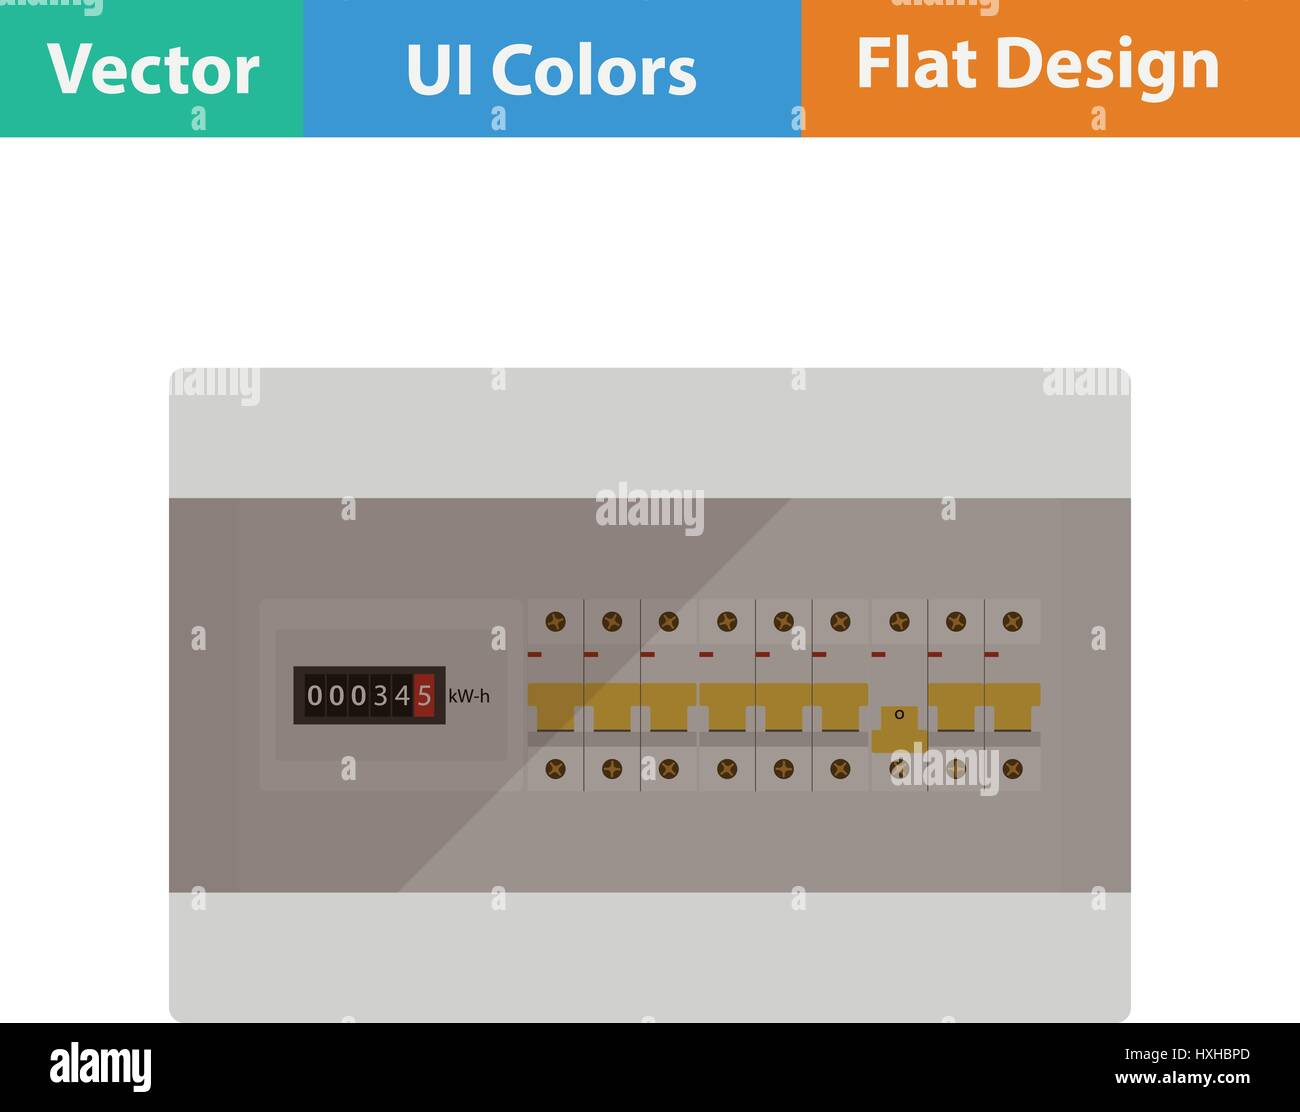 Fuse Box Stock Vector Images Alamy Icons Circuit Breakers Icon Flat Design Illustration